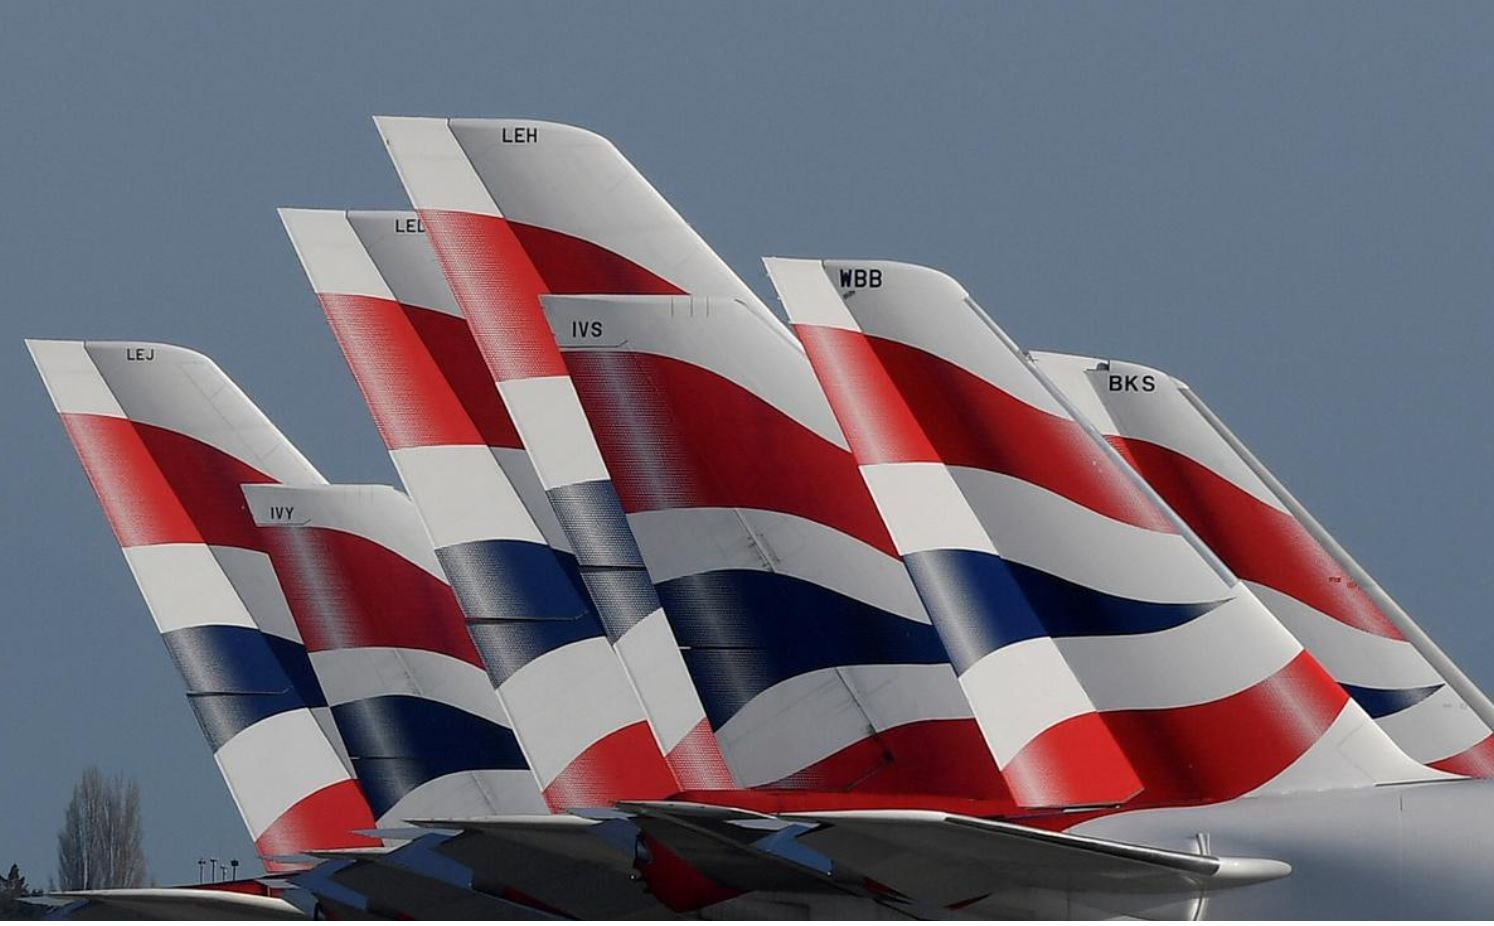 British Airways sacks 350 pilots and puts 300 in 'pool' for rehire - The Sun